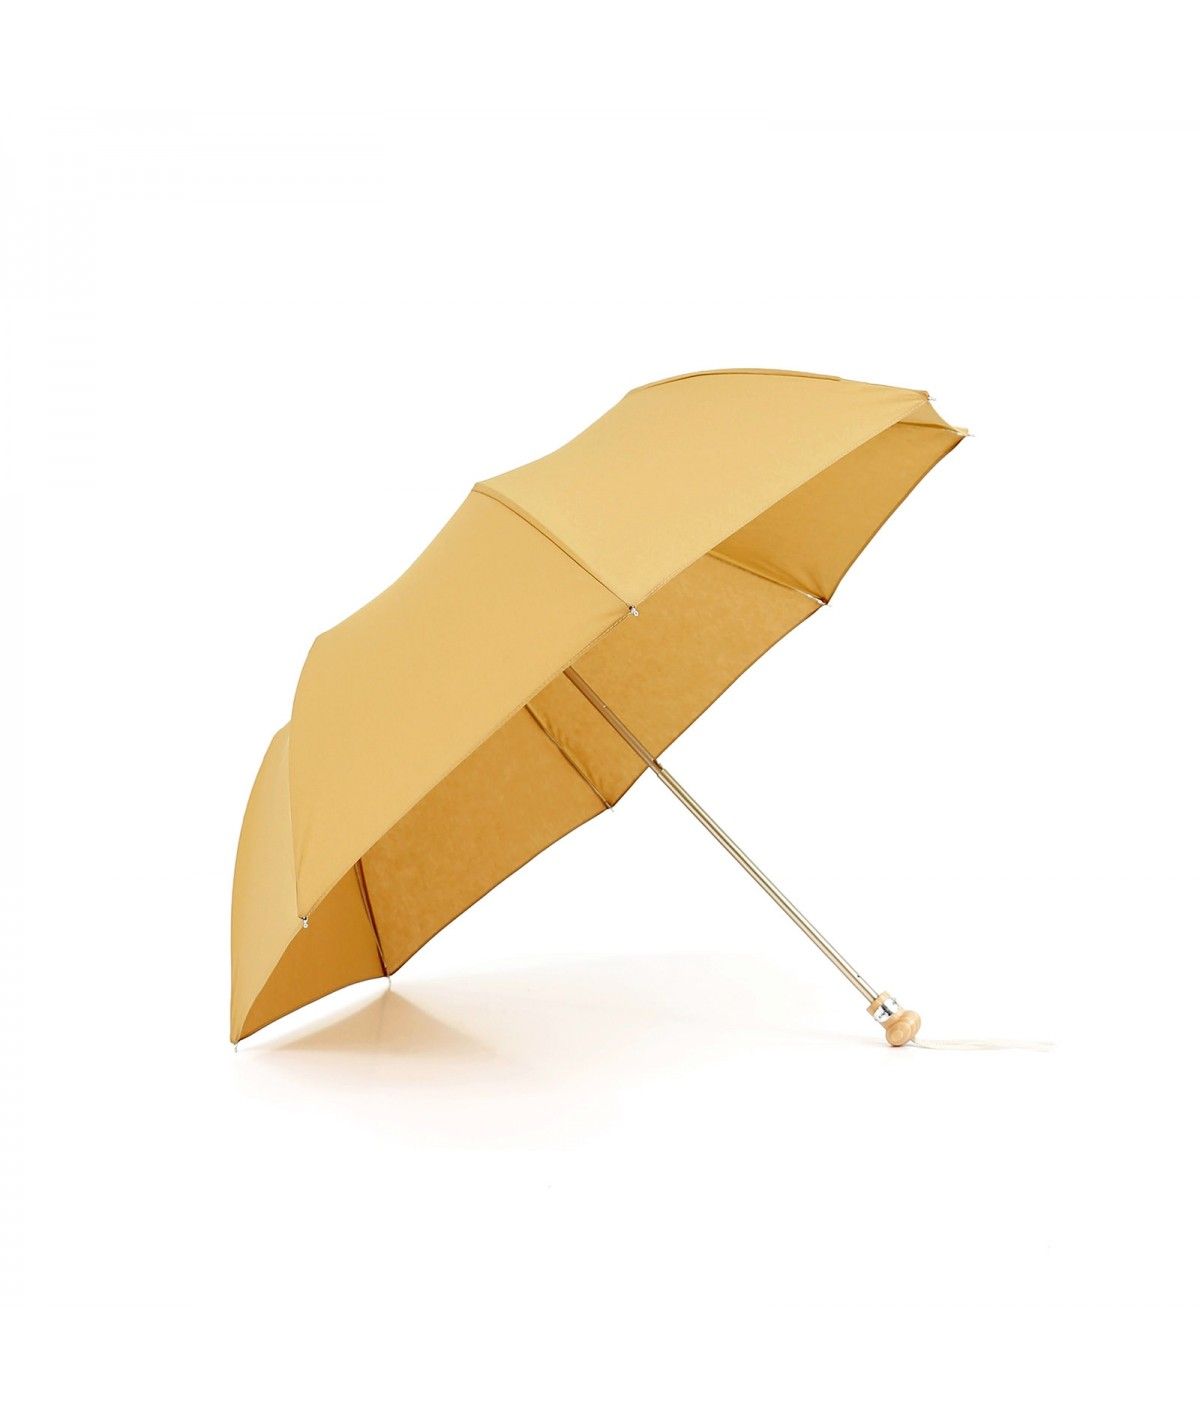 "→ Parasol ""Folding Light Cotton"" - Golden amber handcrafted in France By the French Umbrellas Manufacturer Maison Pierre Vaux"